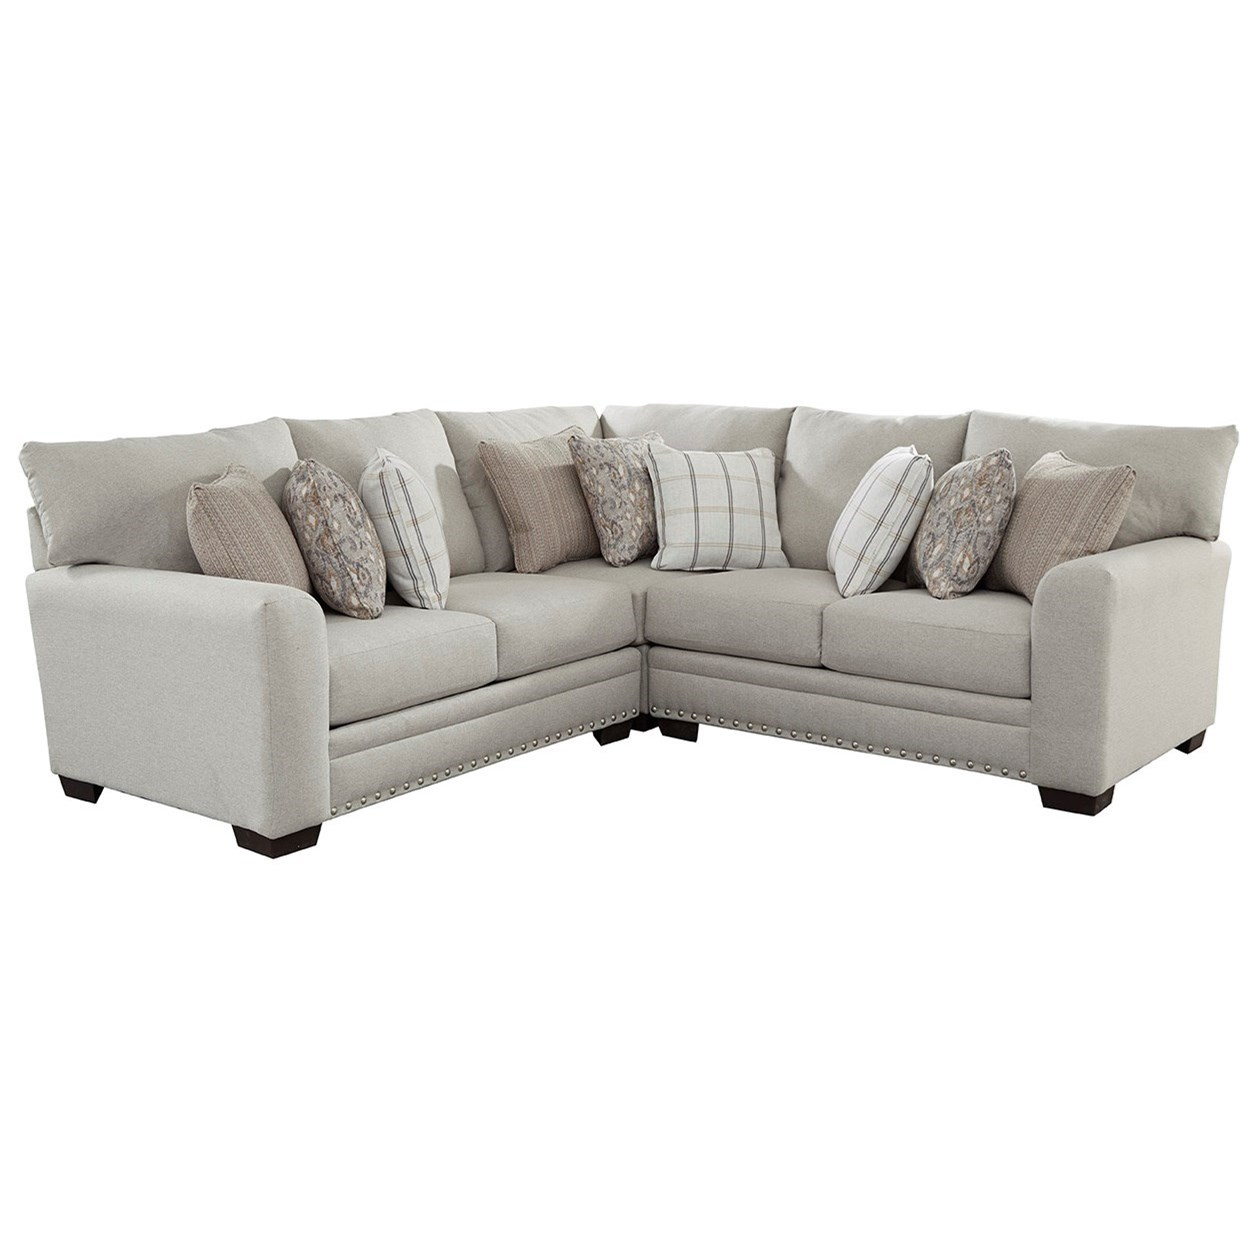 Middleton 2-Piece Sectional by Jackson Furniture at Johnny Janosik